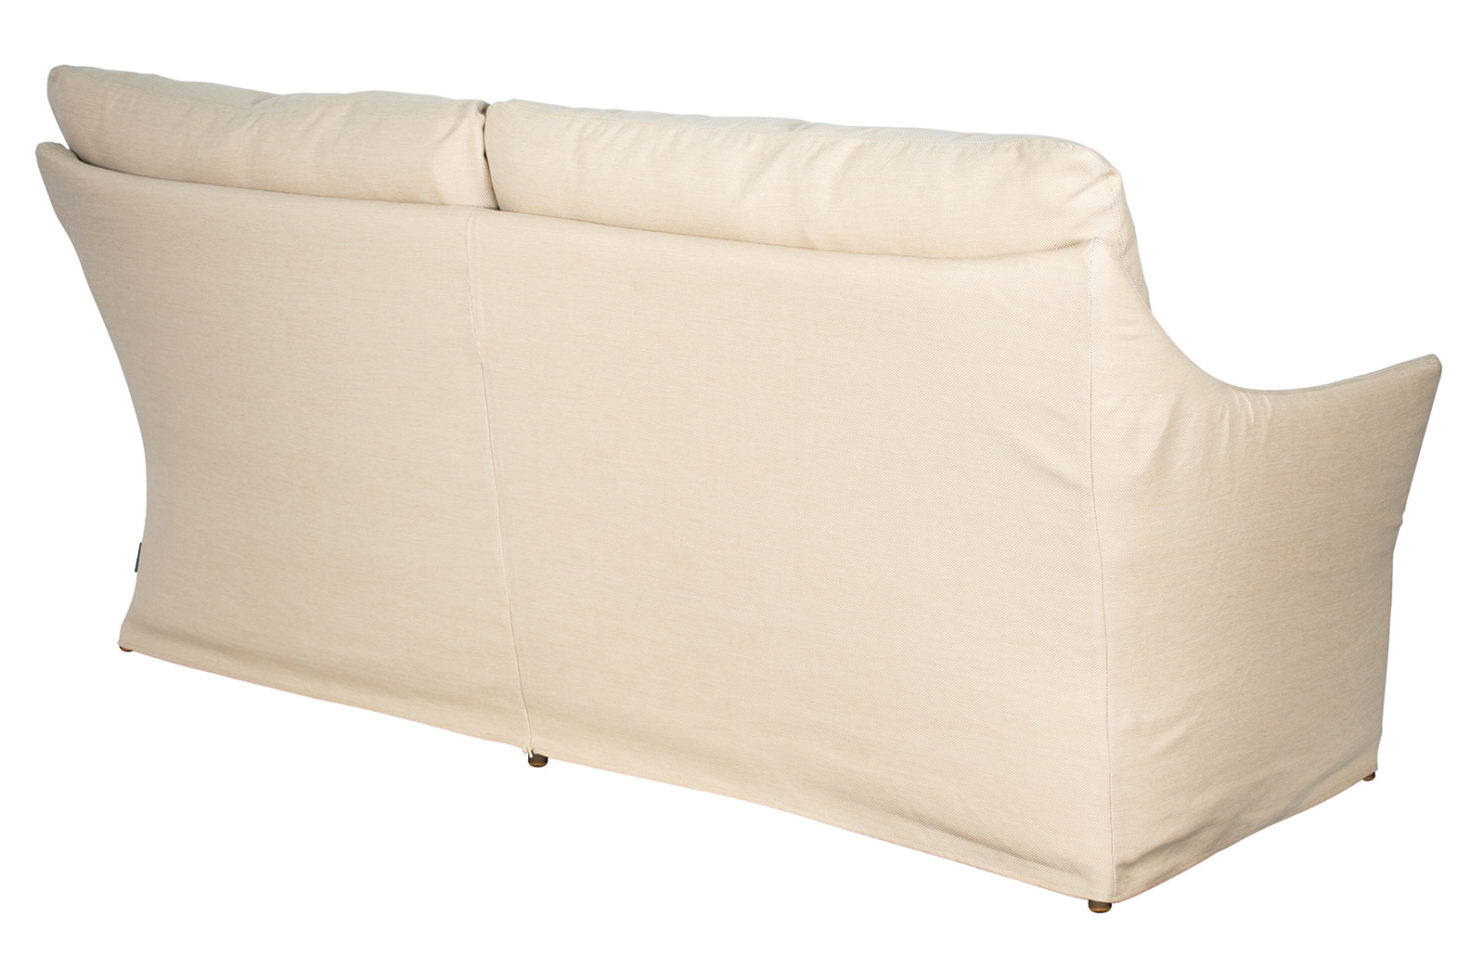 capri sofa 620FT094FC PW 1 3Q back